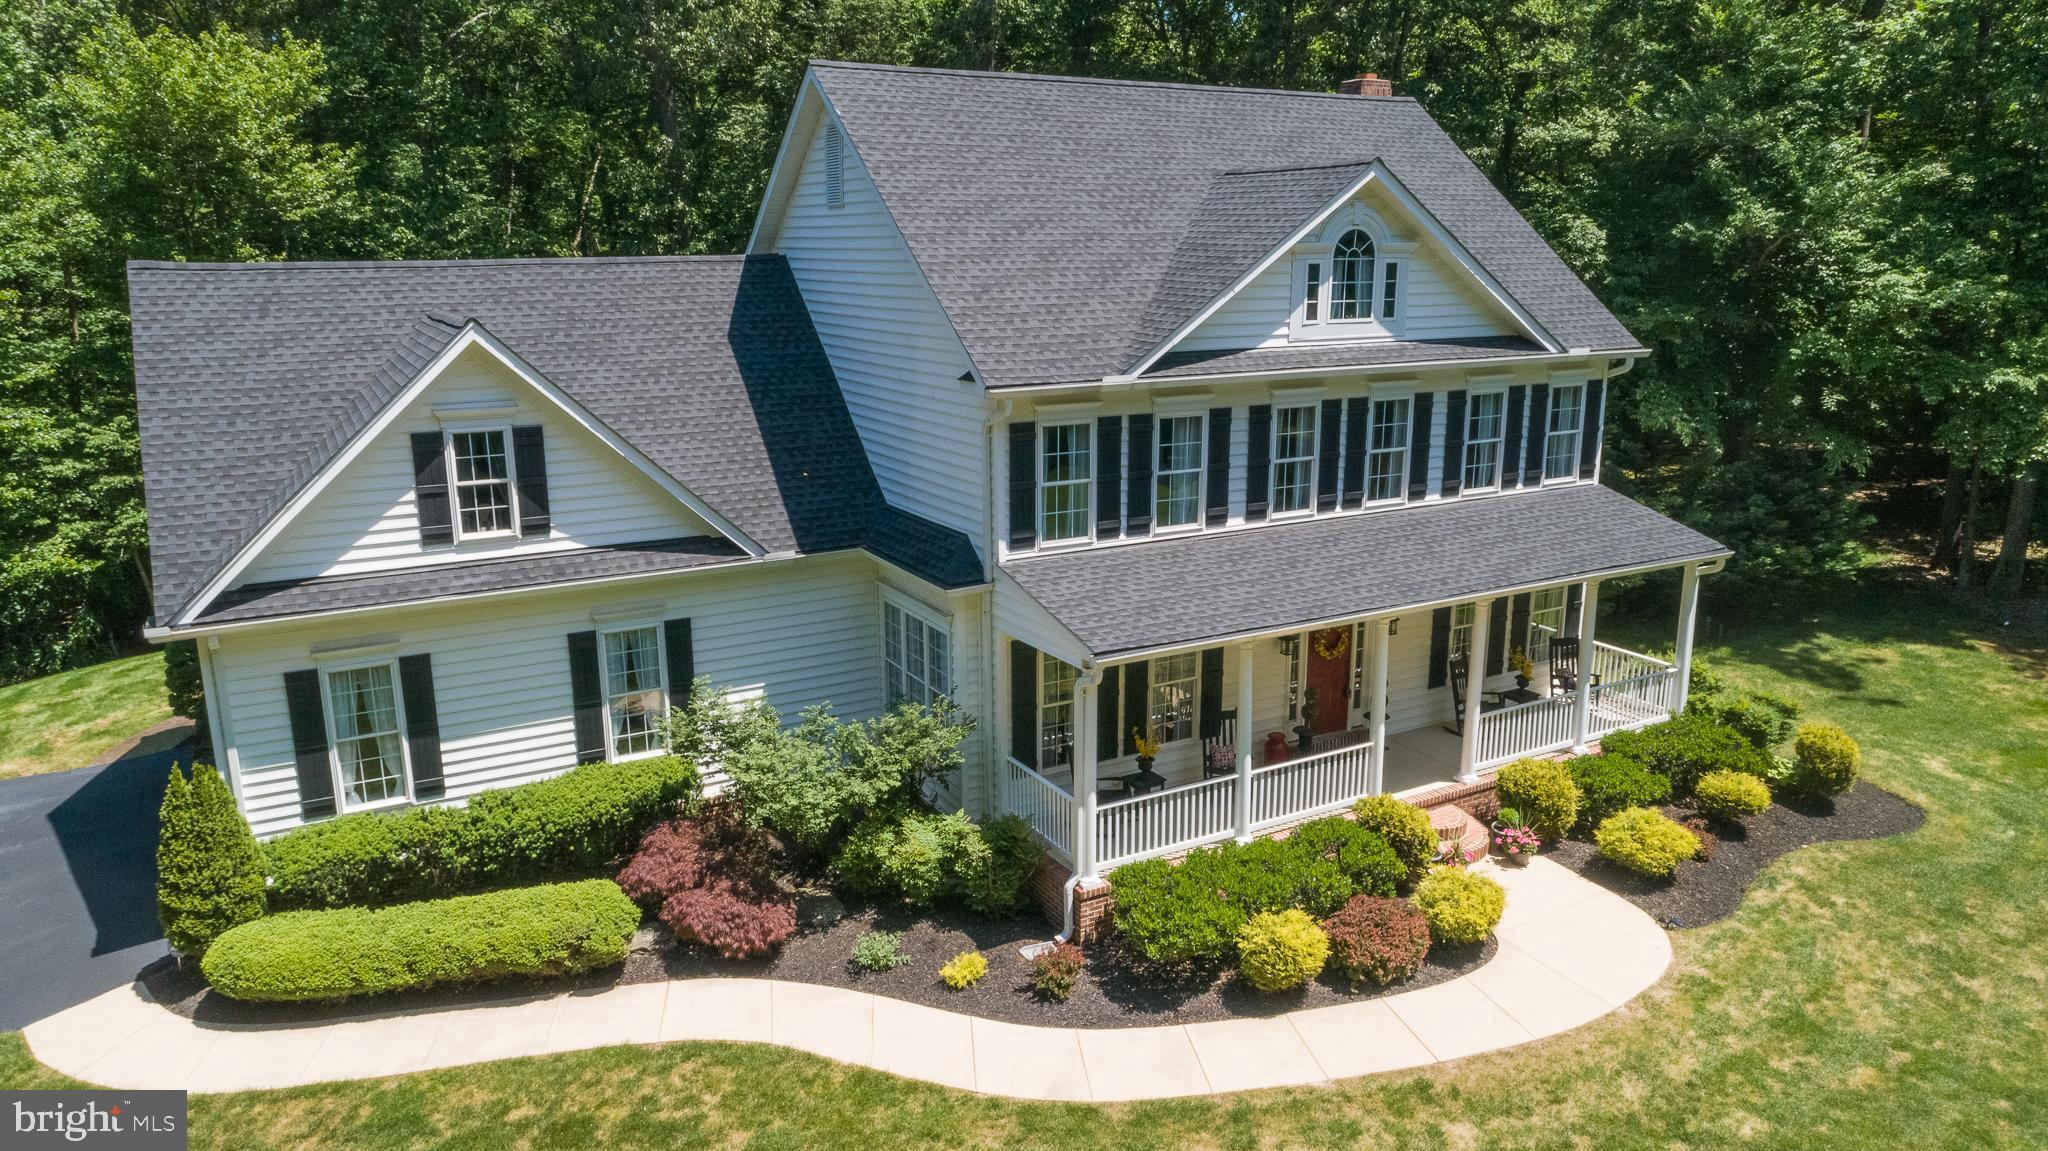 5475 WILLIAM STONE Pl, Welcome, MD, 20693